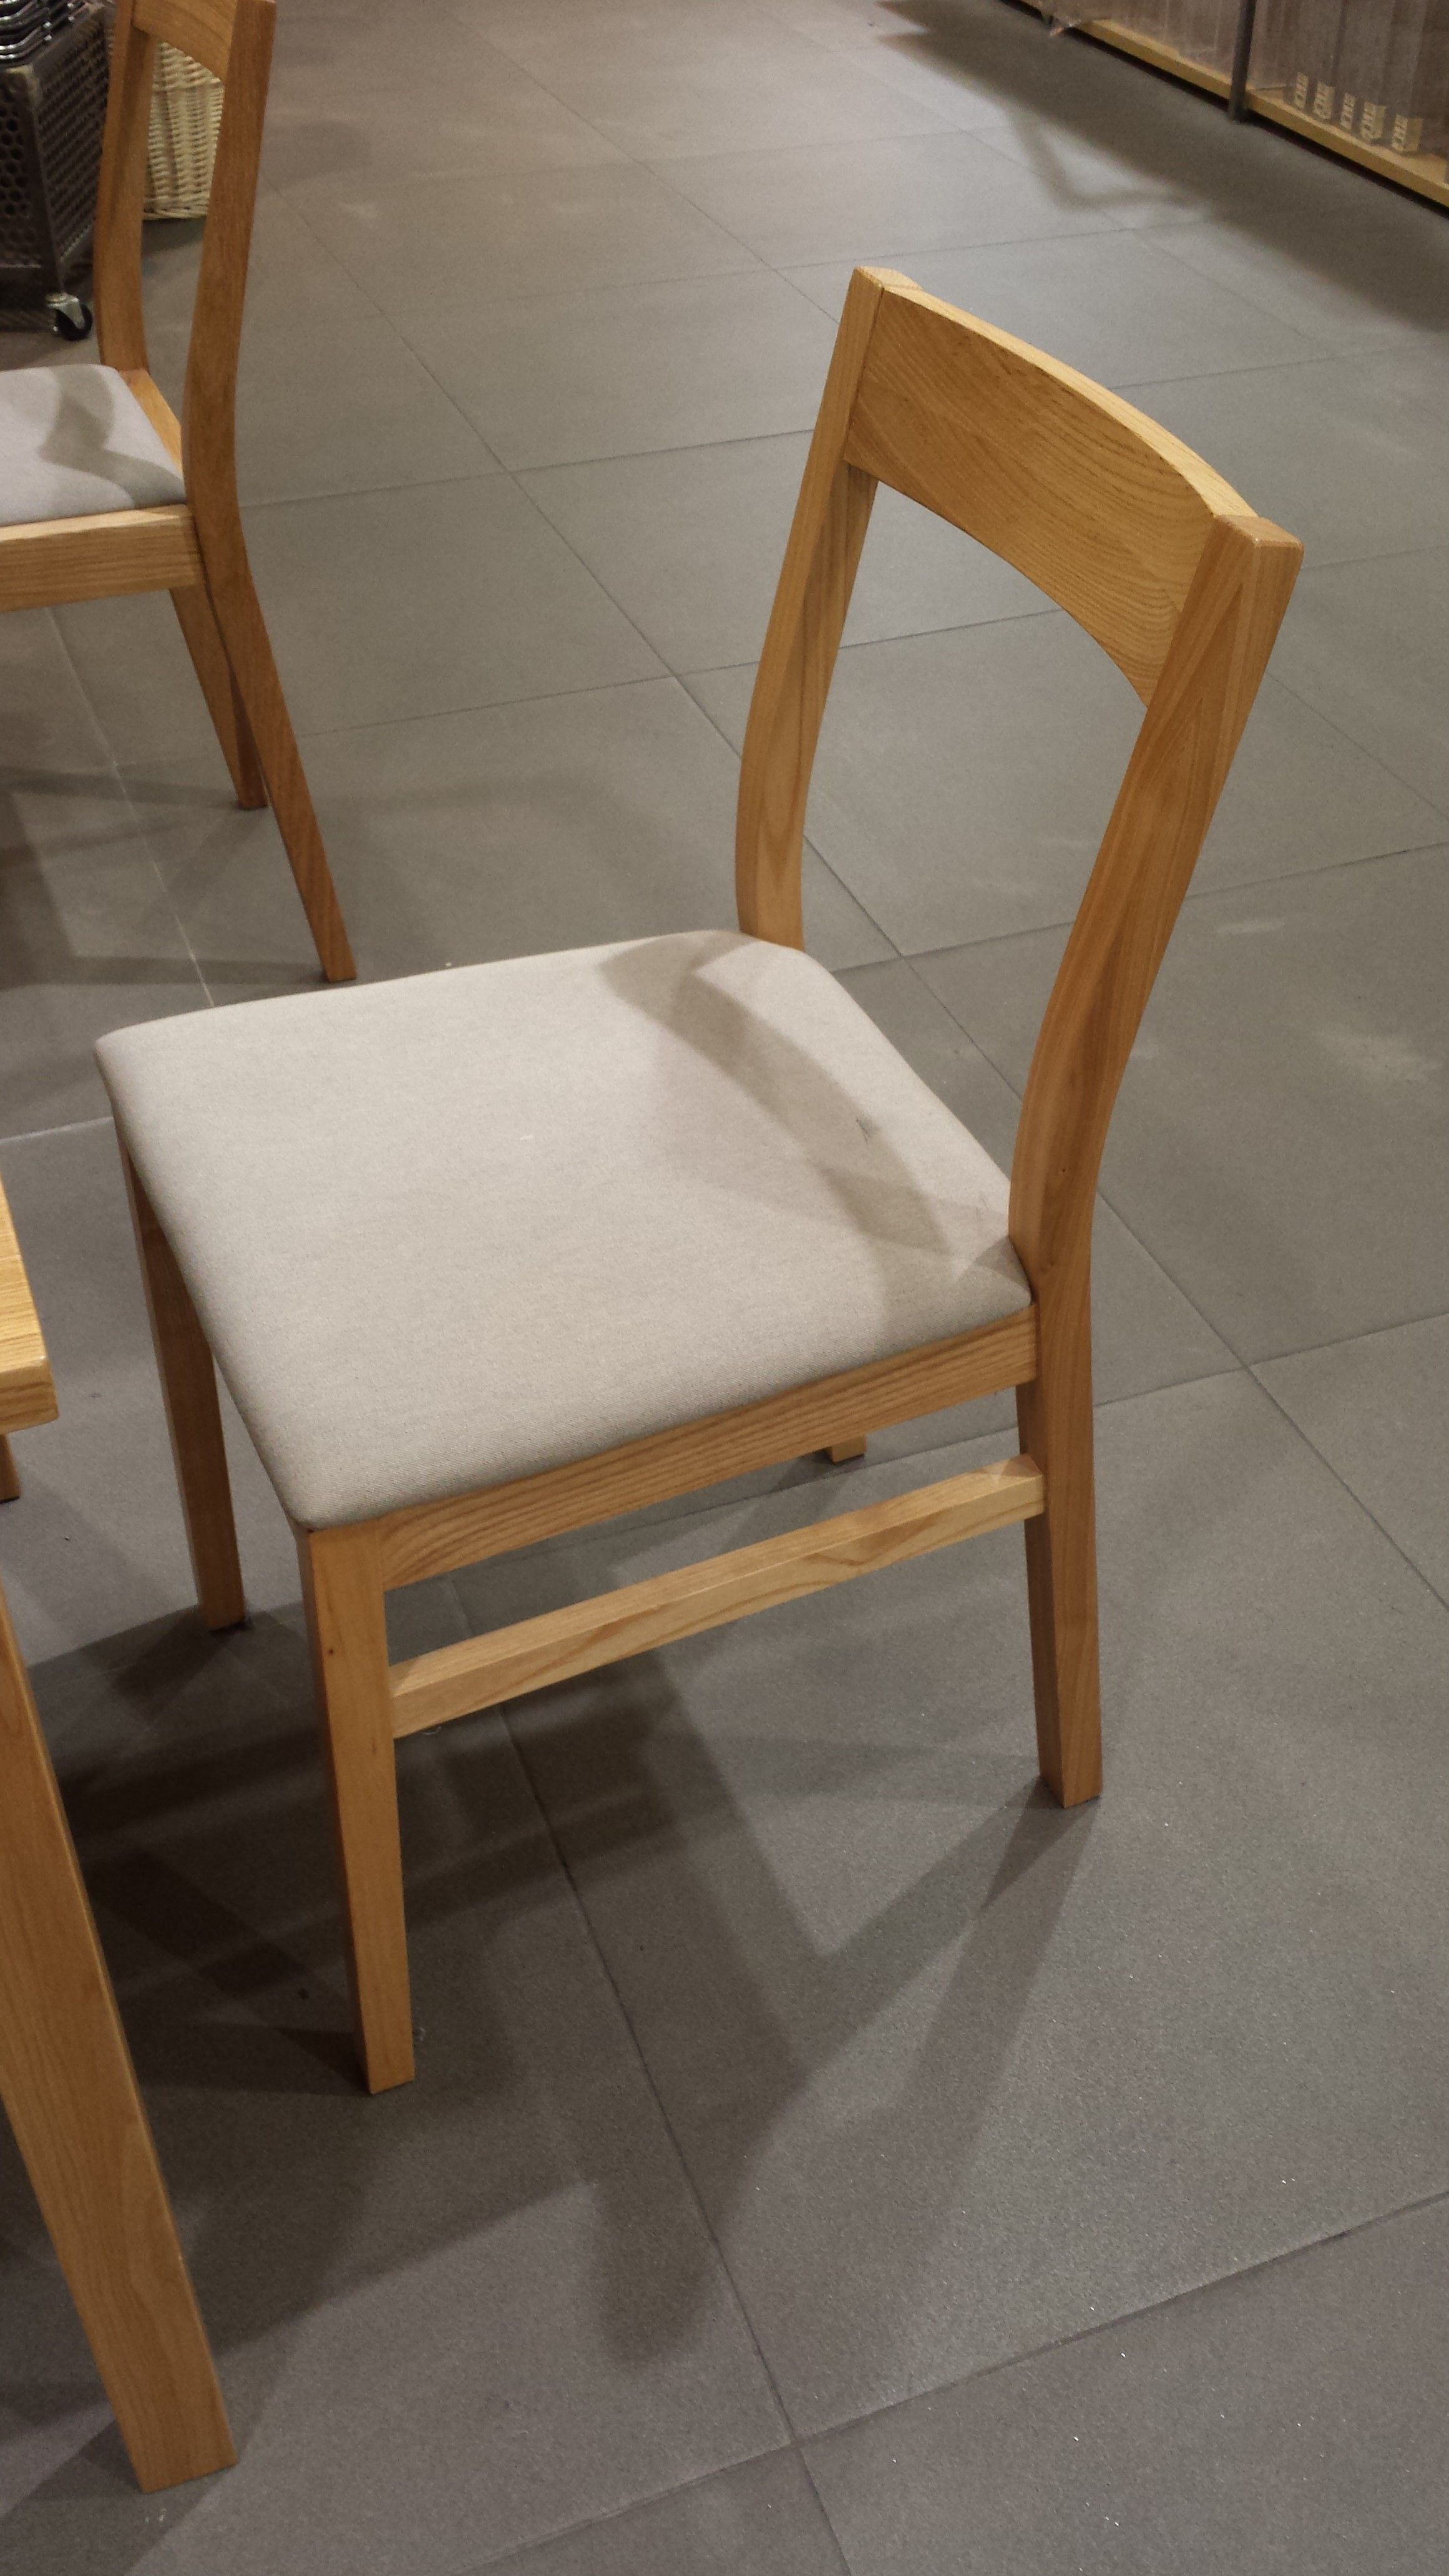 1 4m ash table from muji chairs sofa and table